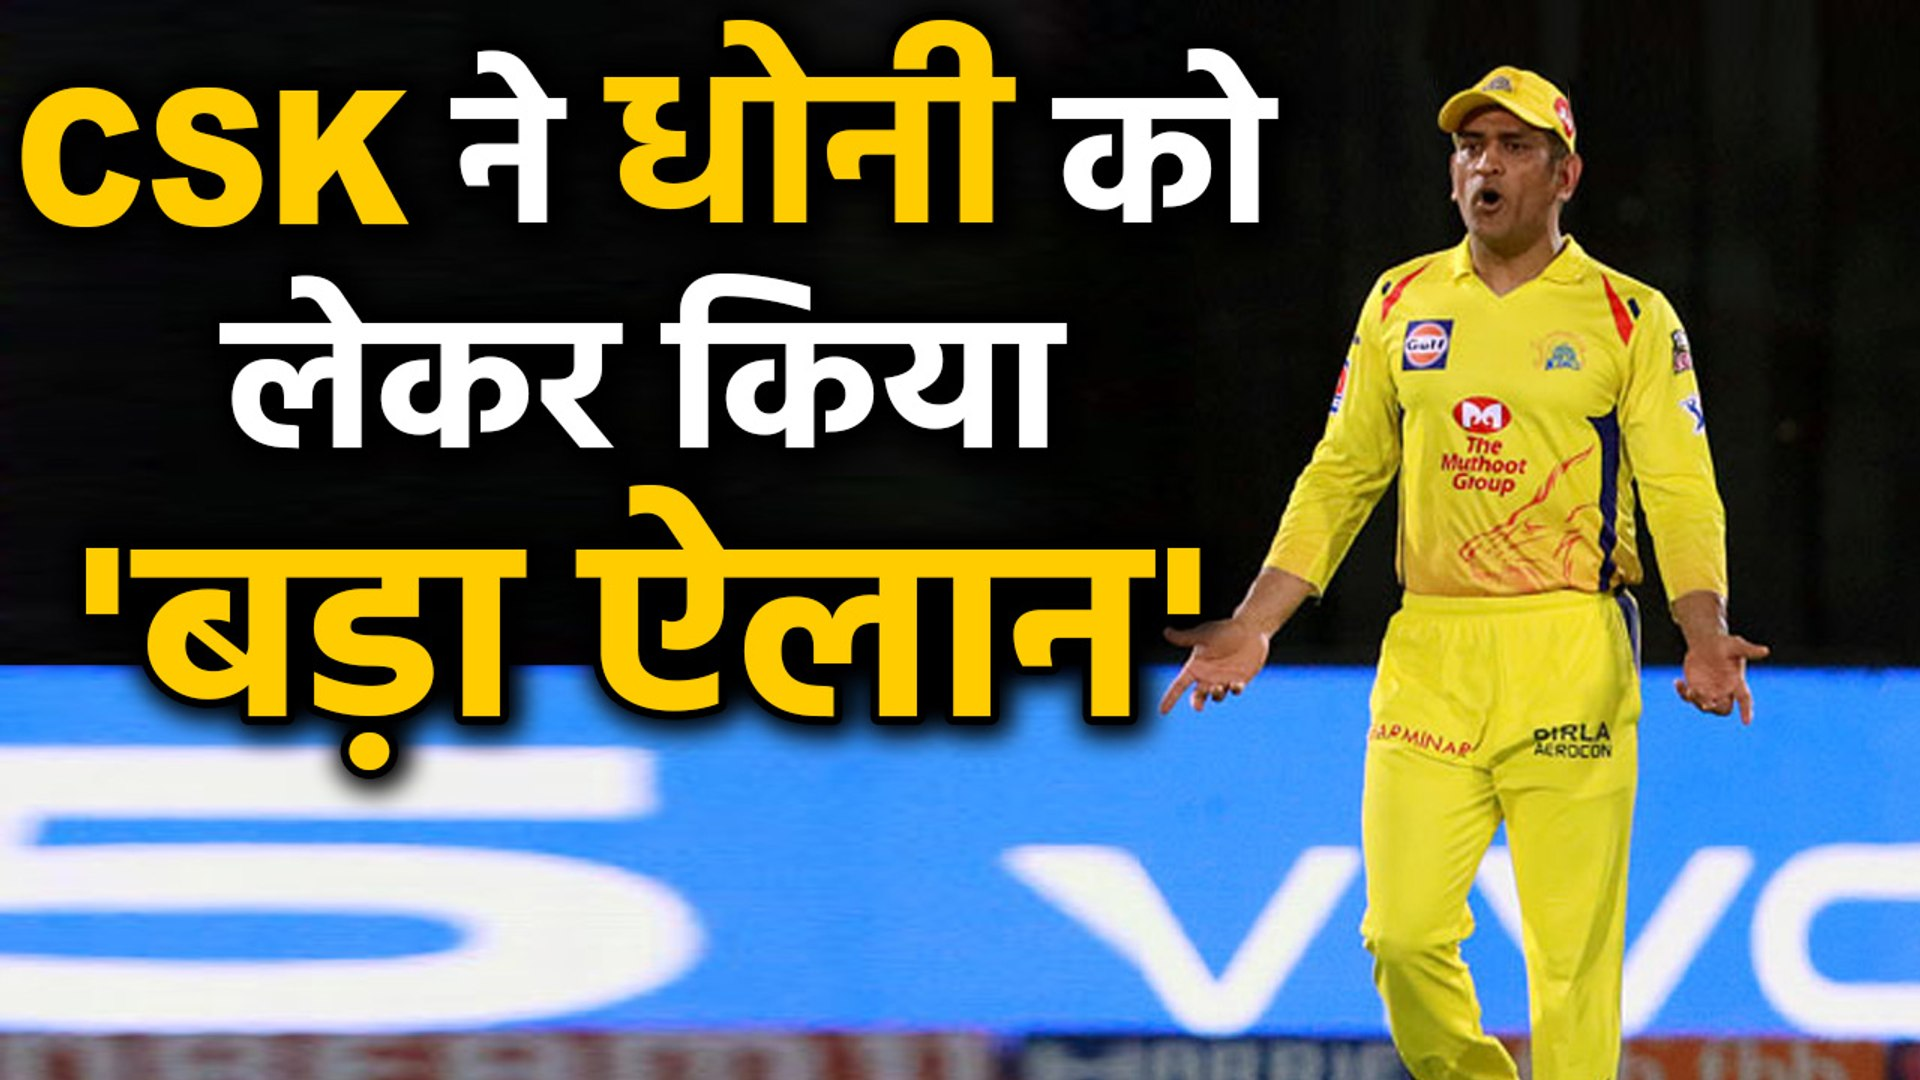 MS Dhoni will play for CSK in IPL 2020 and 2021 confirms owner N. Srinivasan | वनइंडिया हिंदी